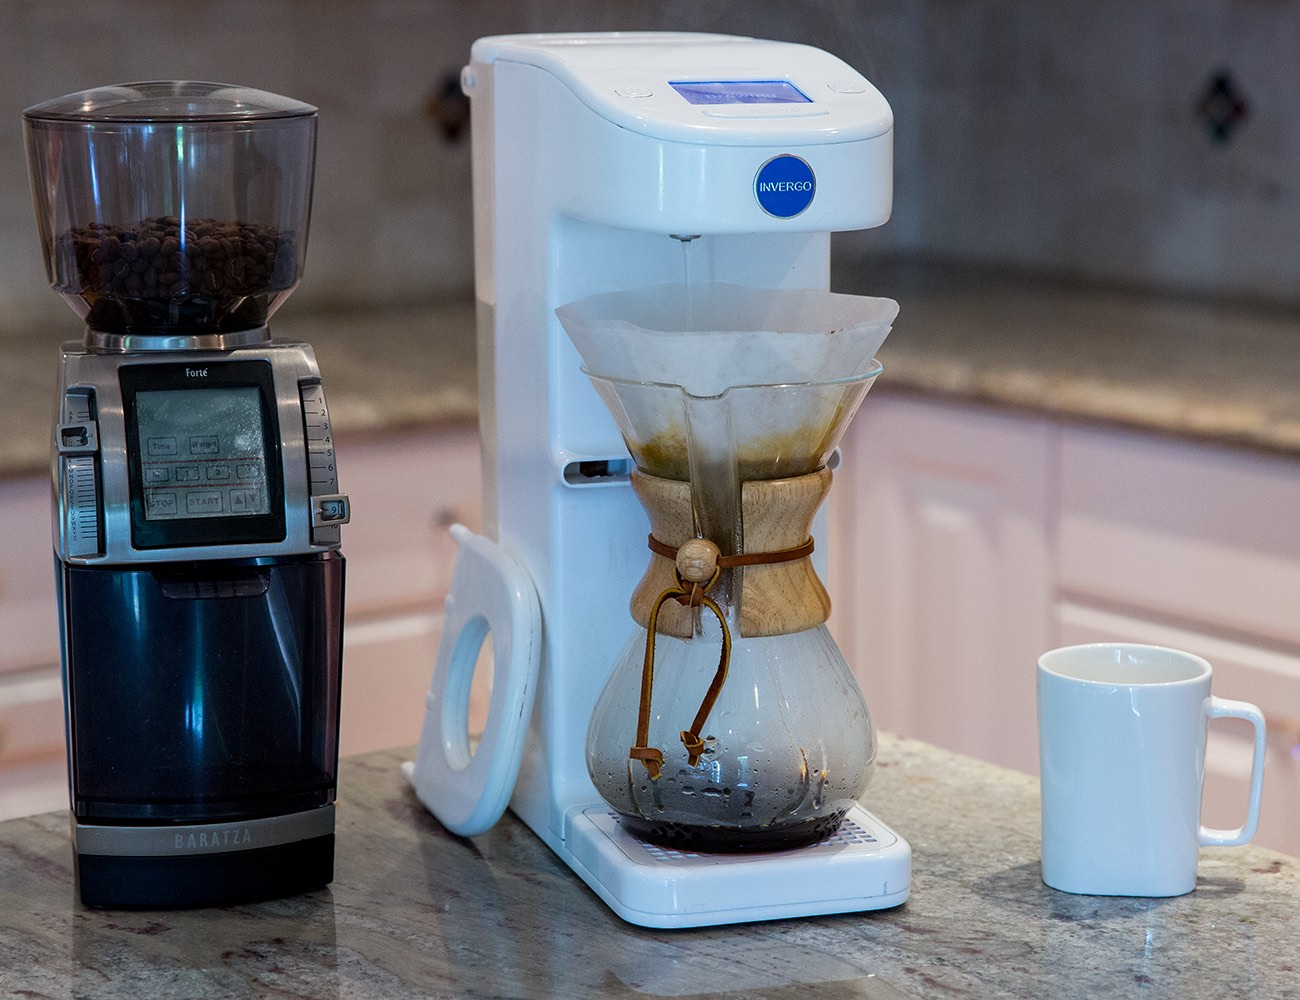 Invergo The First Automated Pour Over Coffee System 187 Review